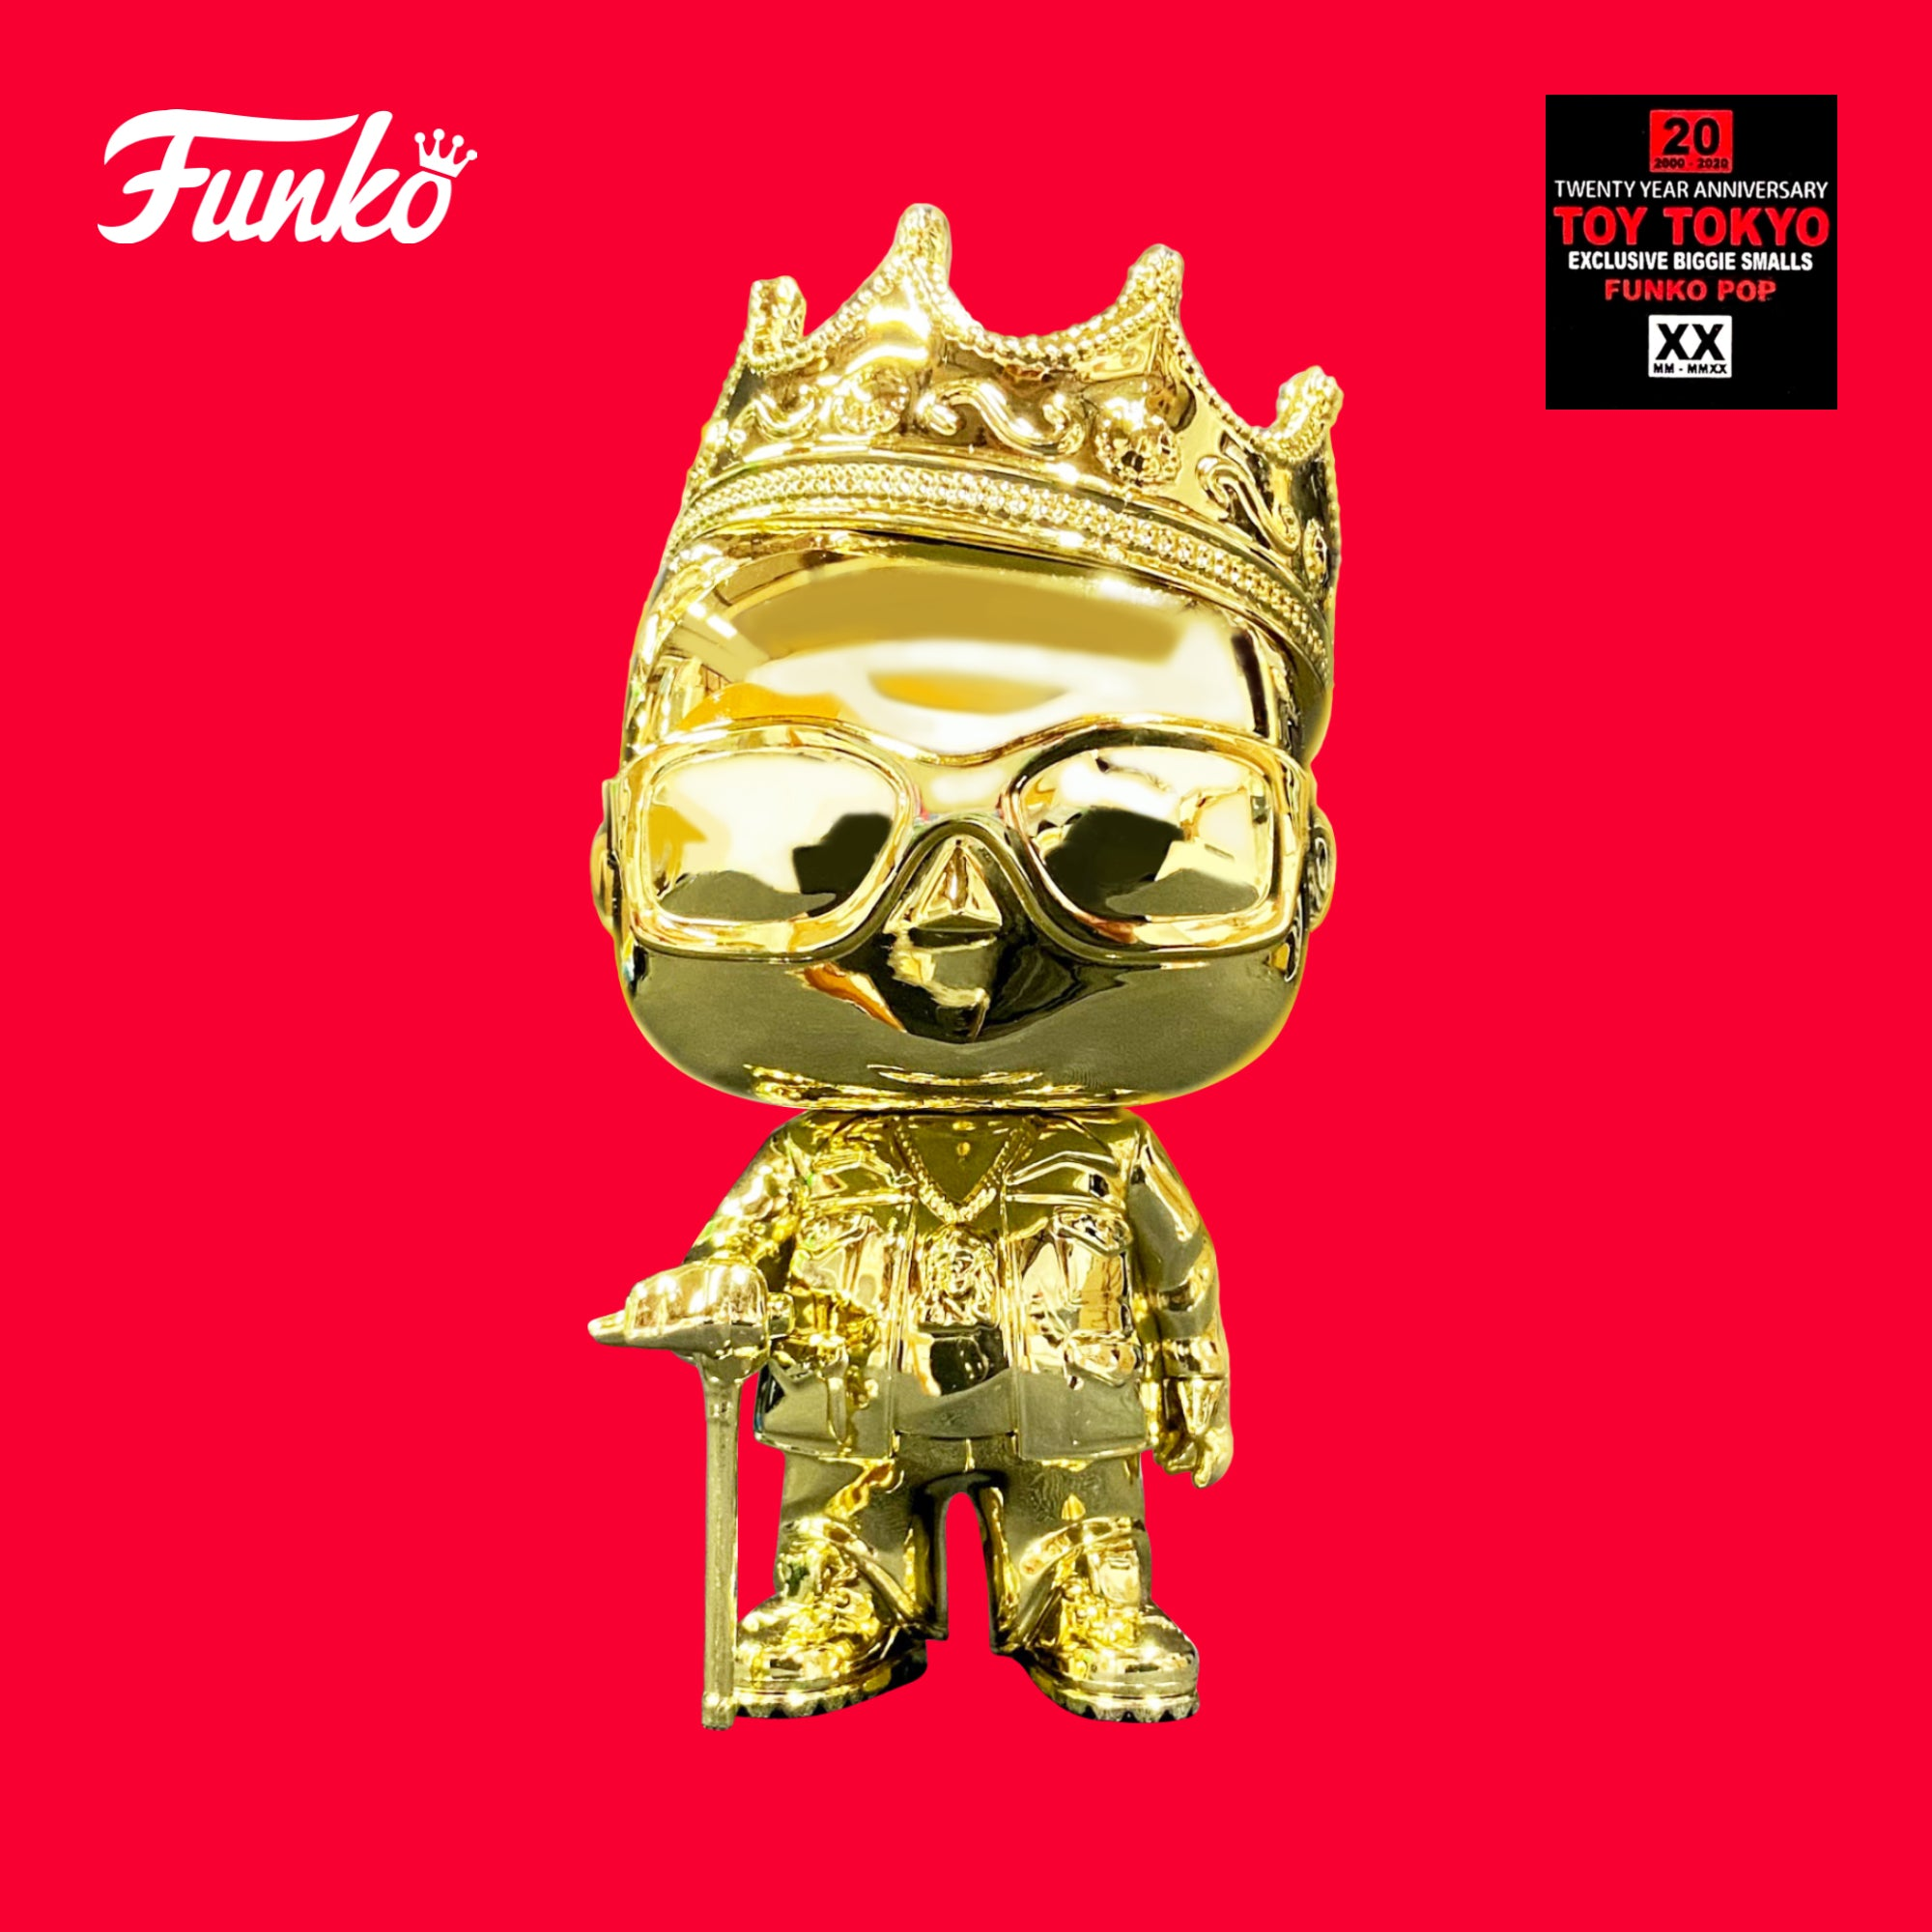 Funko Pop - The Notorious B.I.G. Smalls 20th (Gold)